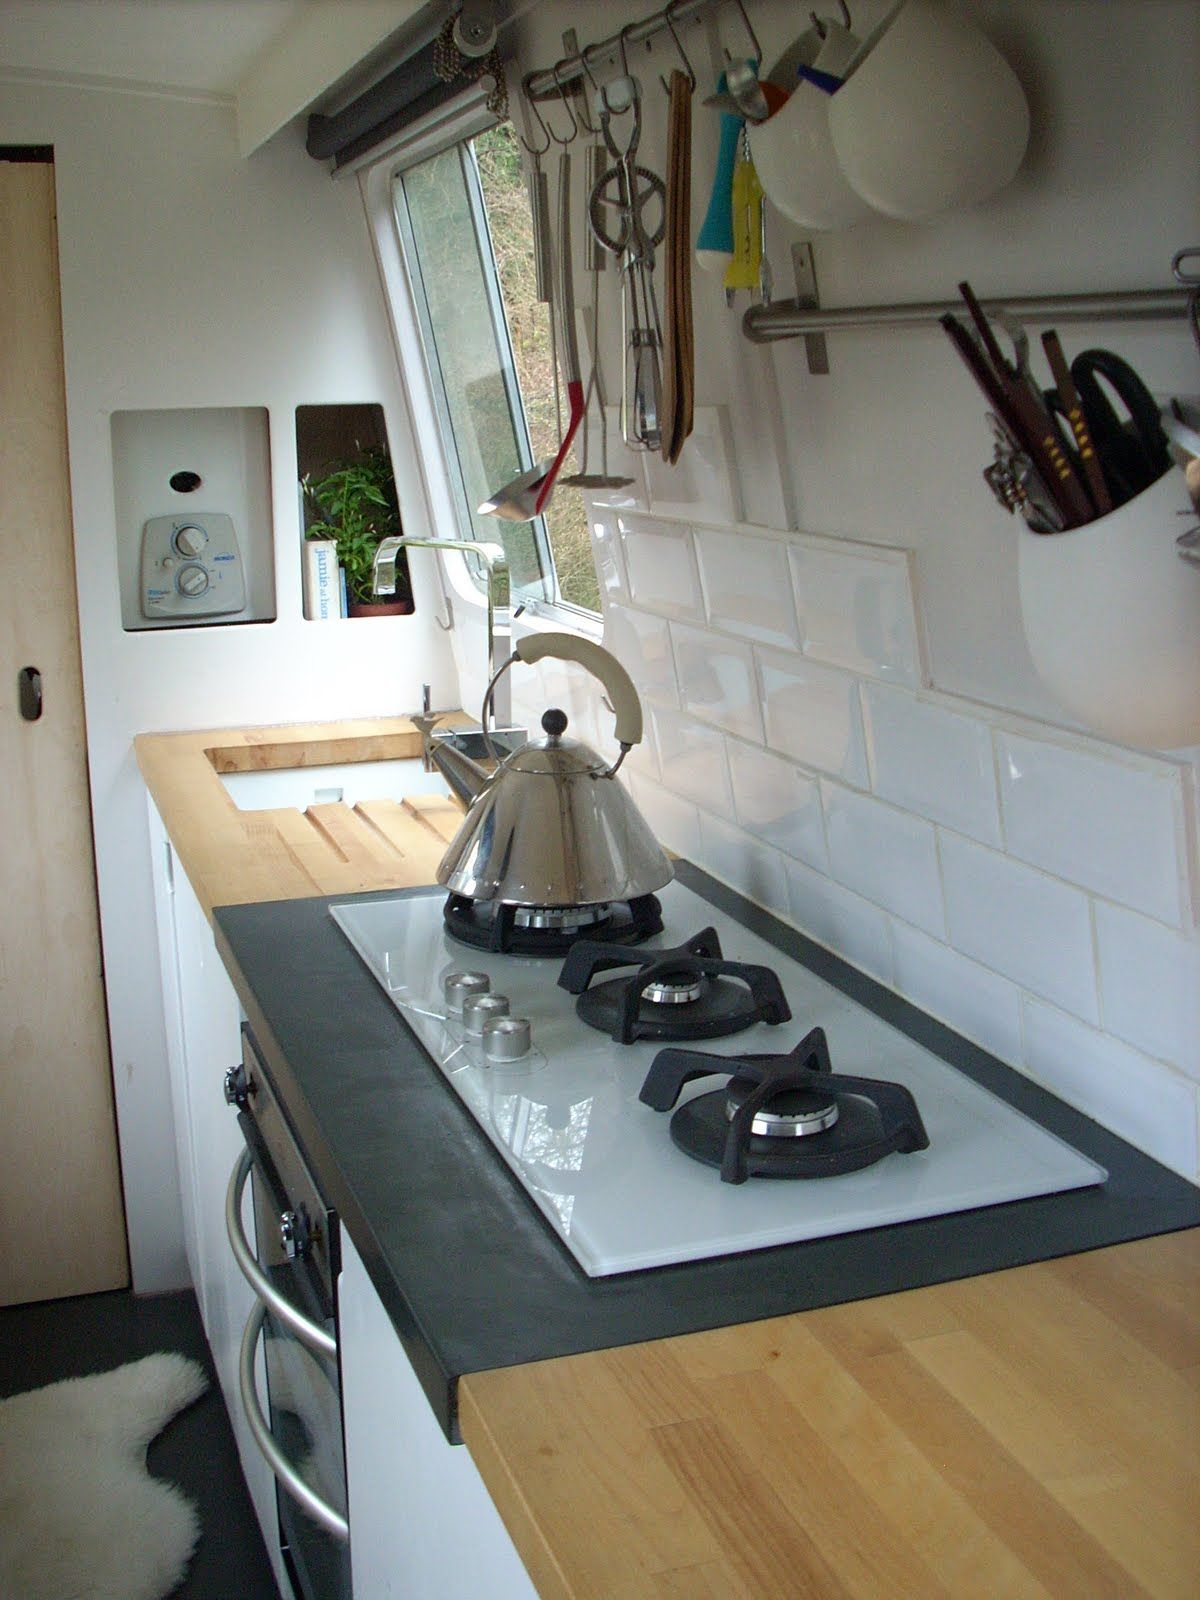 ikea kitchen system in an rv i like the cutting board counter but rh pinterest com ikear kitchen 3d